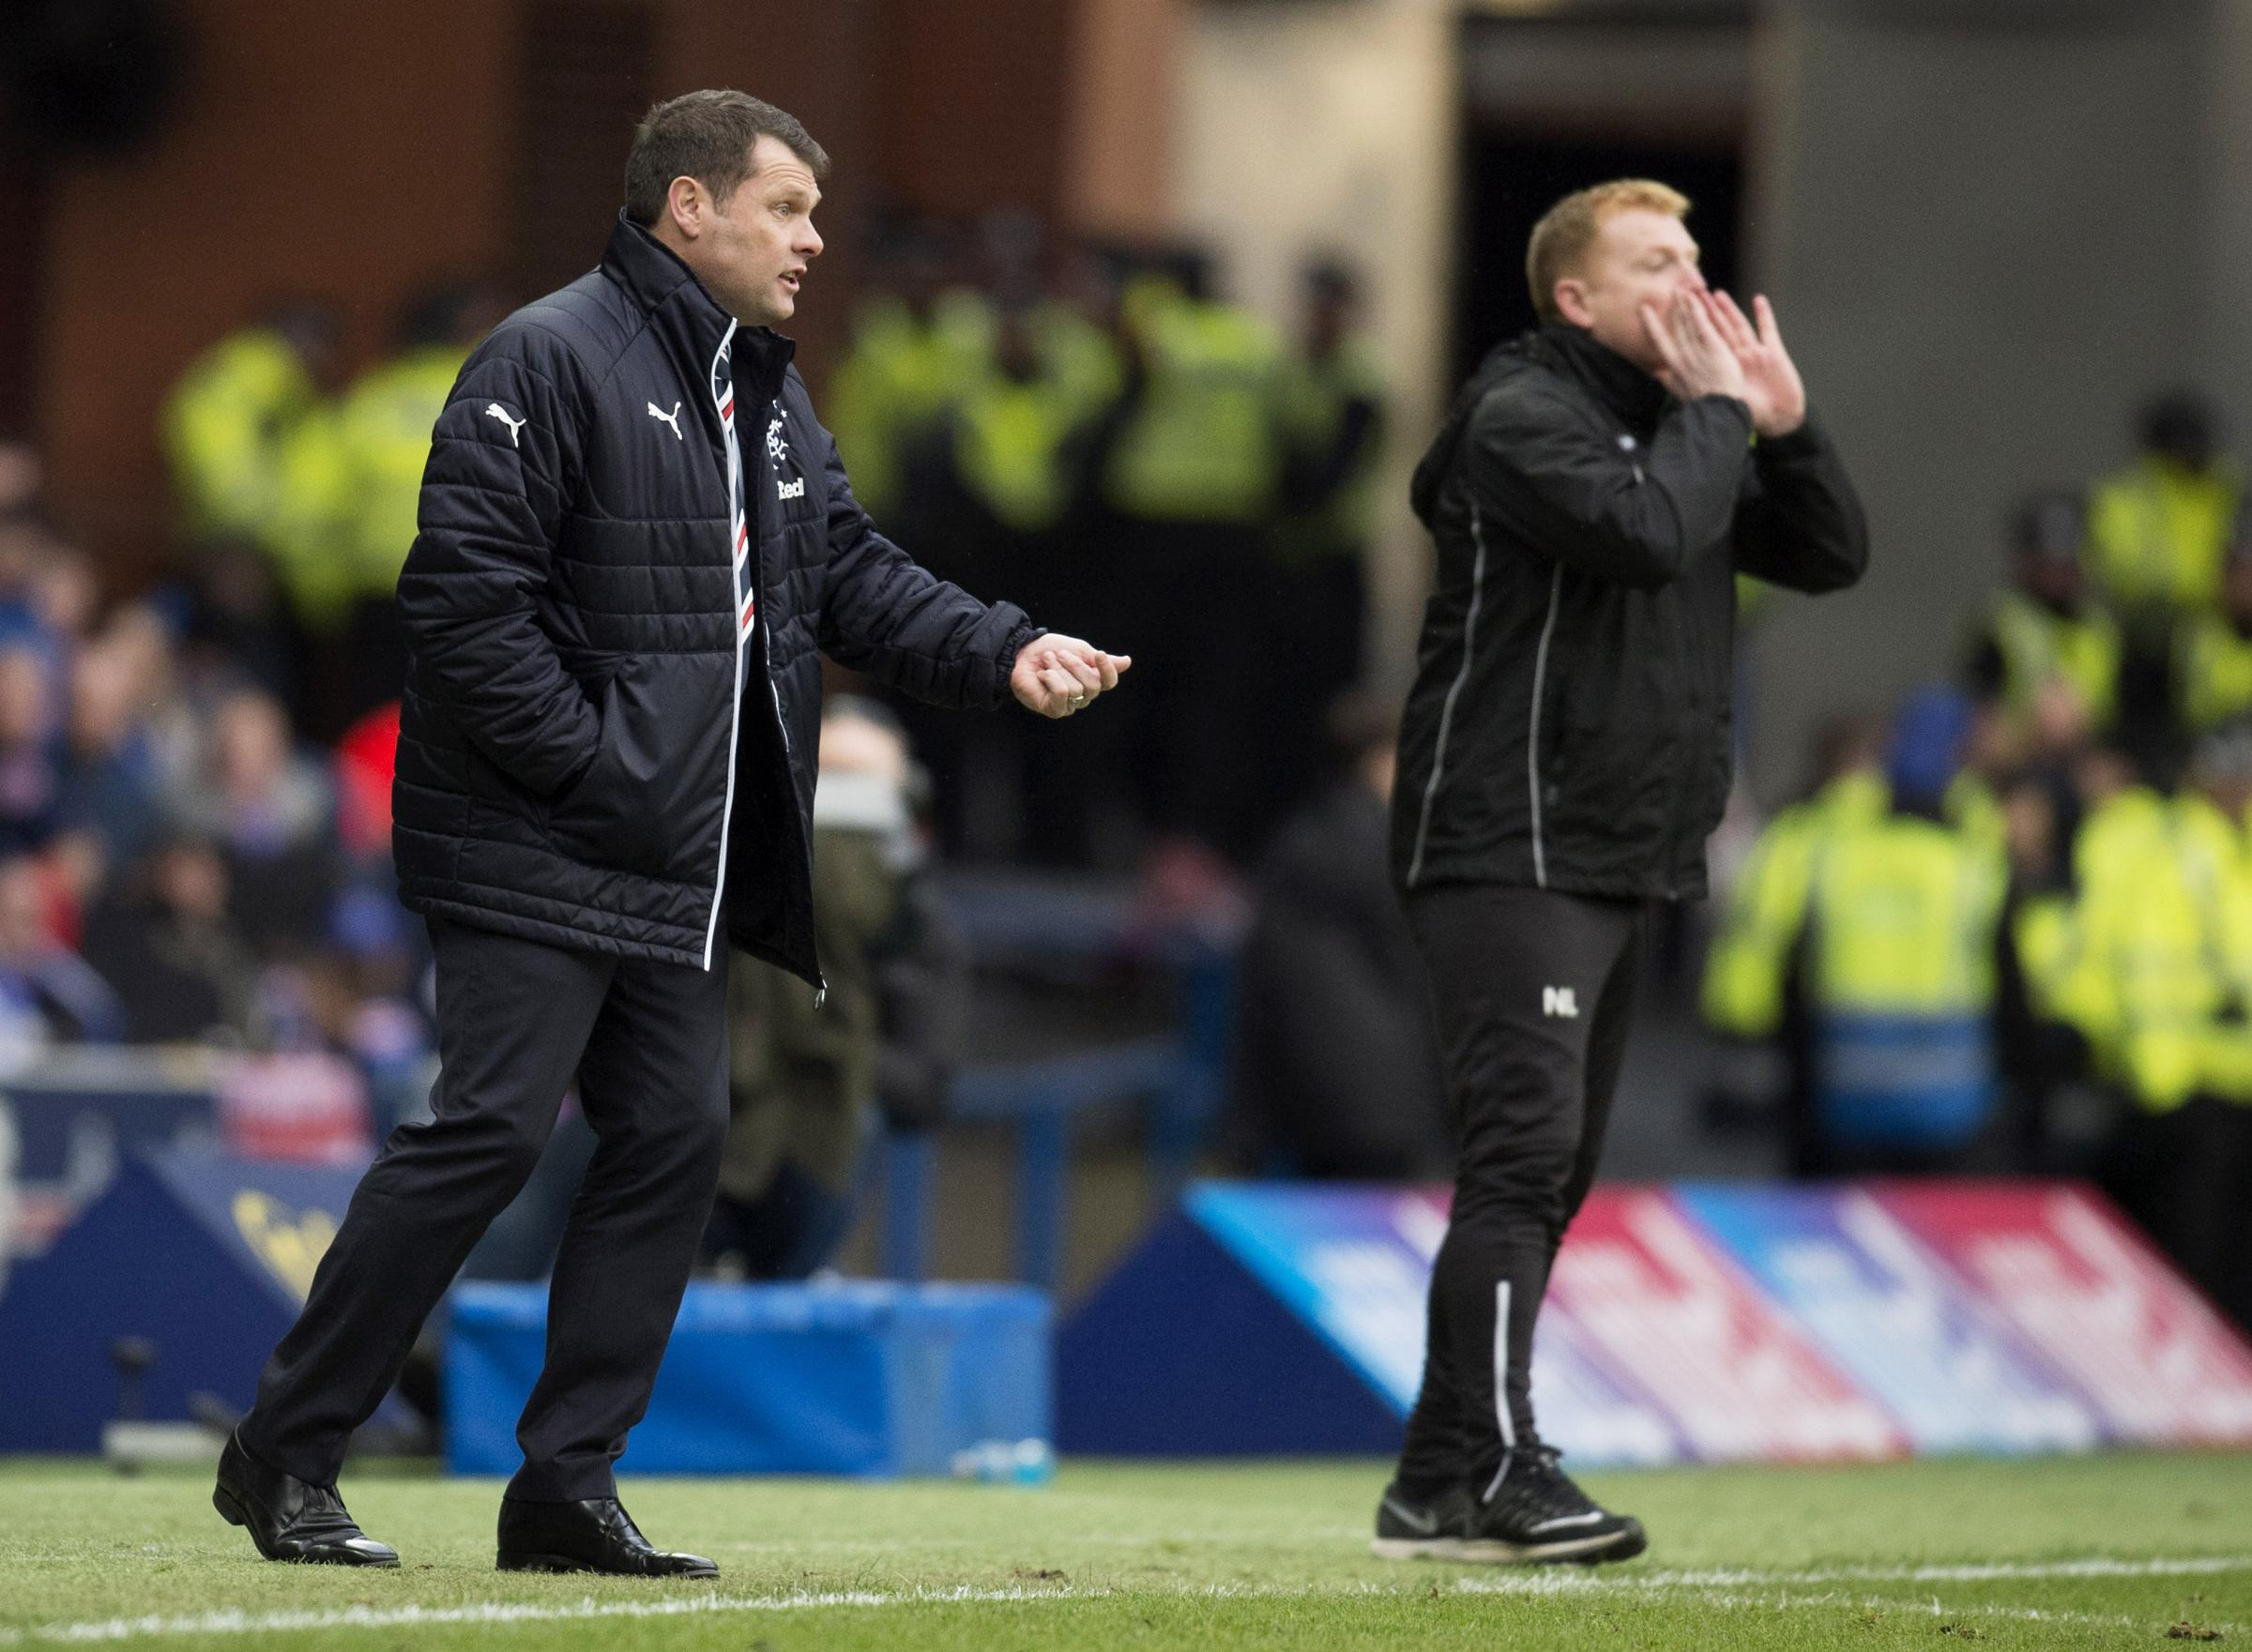 Rangers manager Graeme Murty says that Hibs boss Neil Lennon was impressed by his side in Saturday's game at Ibrox.